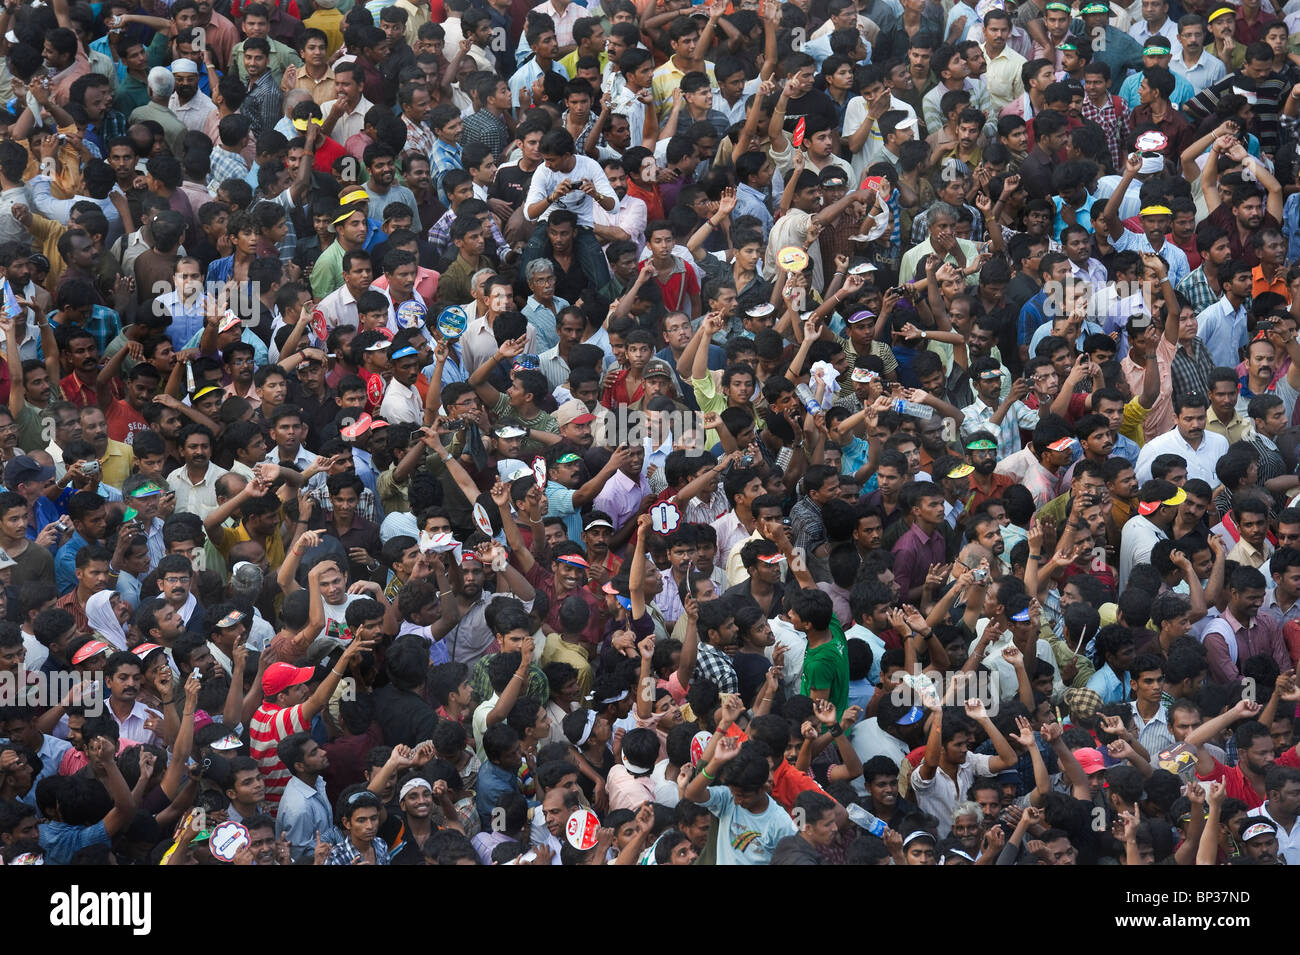 India Kerala Thrissur a joyful large crowd during the Pooram Elephant Festival - Stock Image